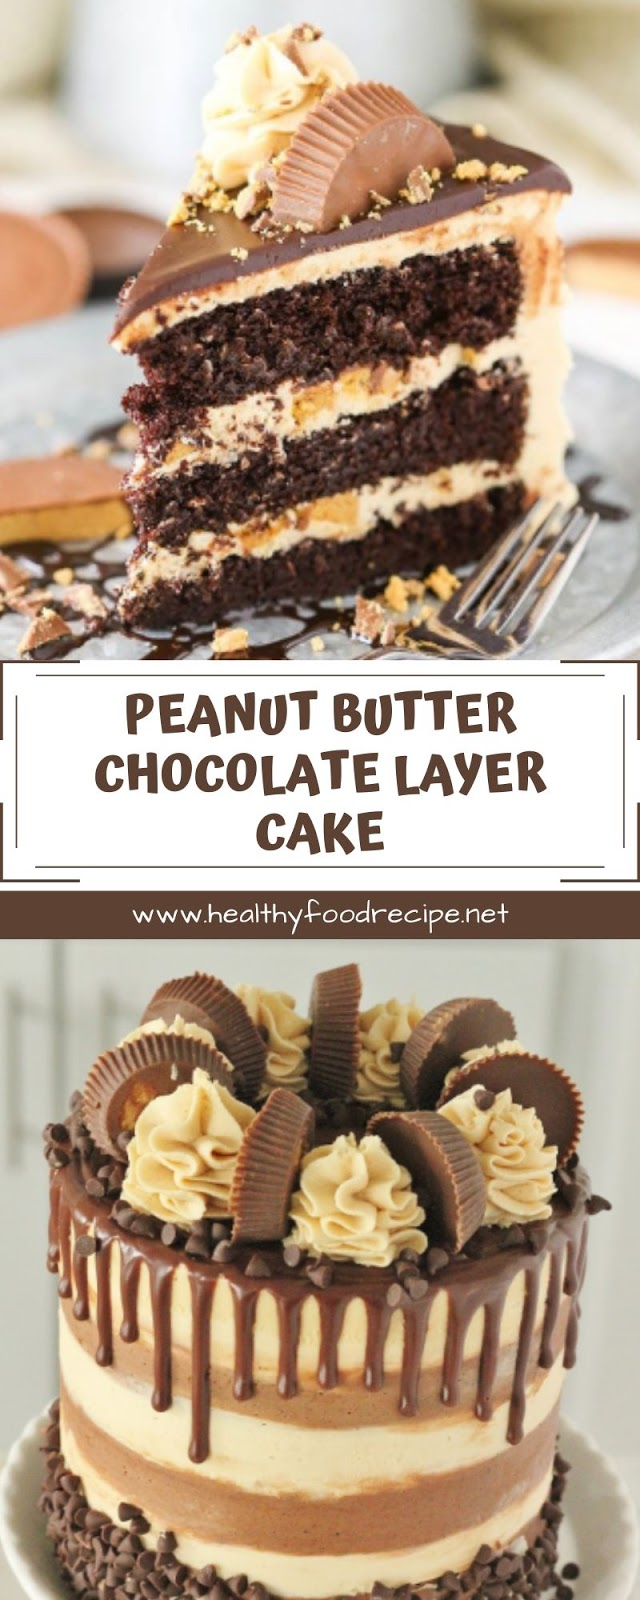 PEANUT BUTTER CHOCOLATE LAYER CAKE